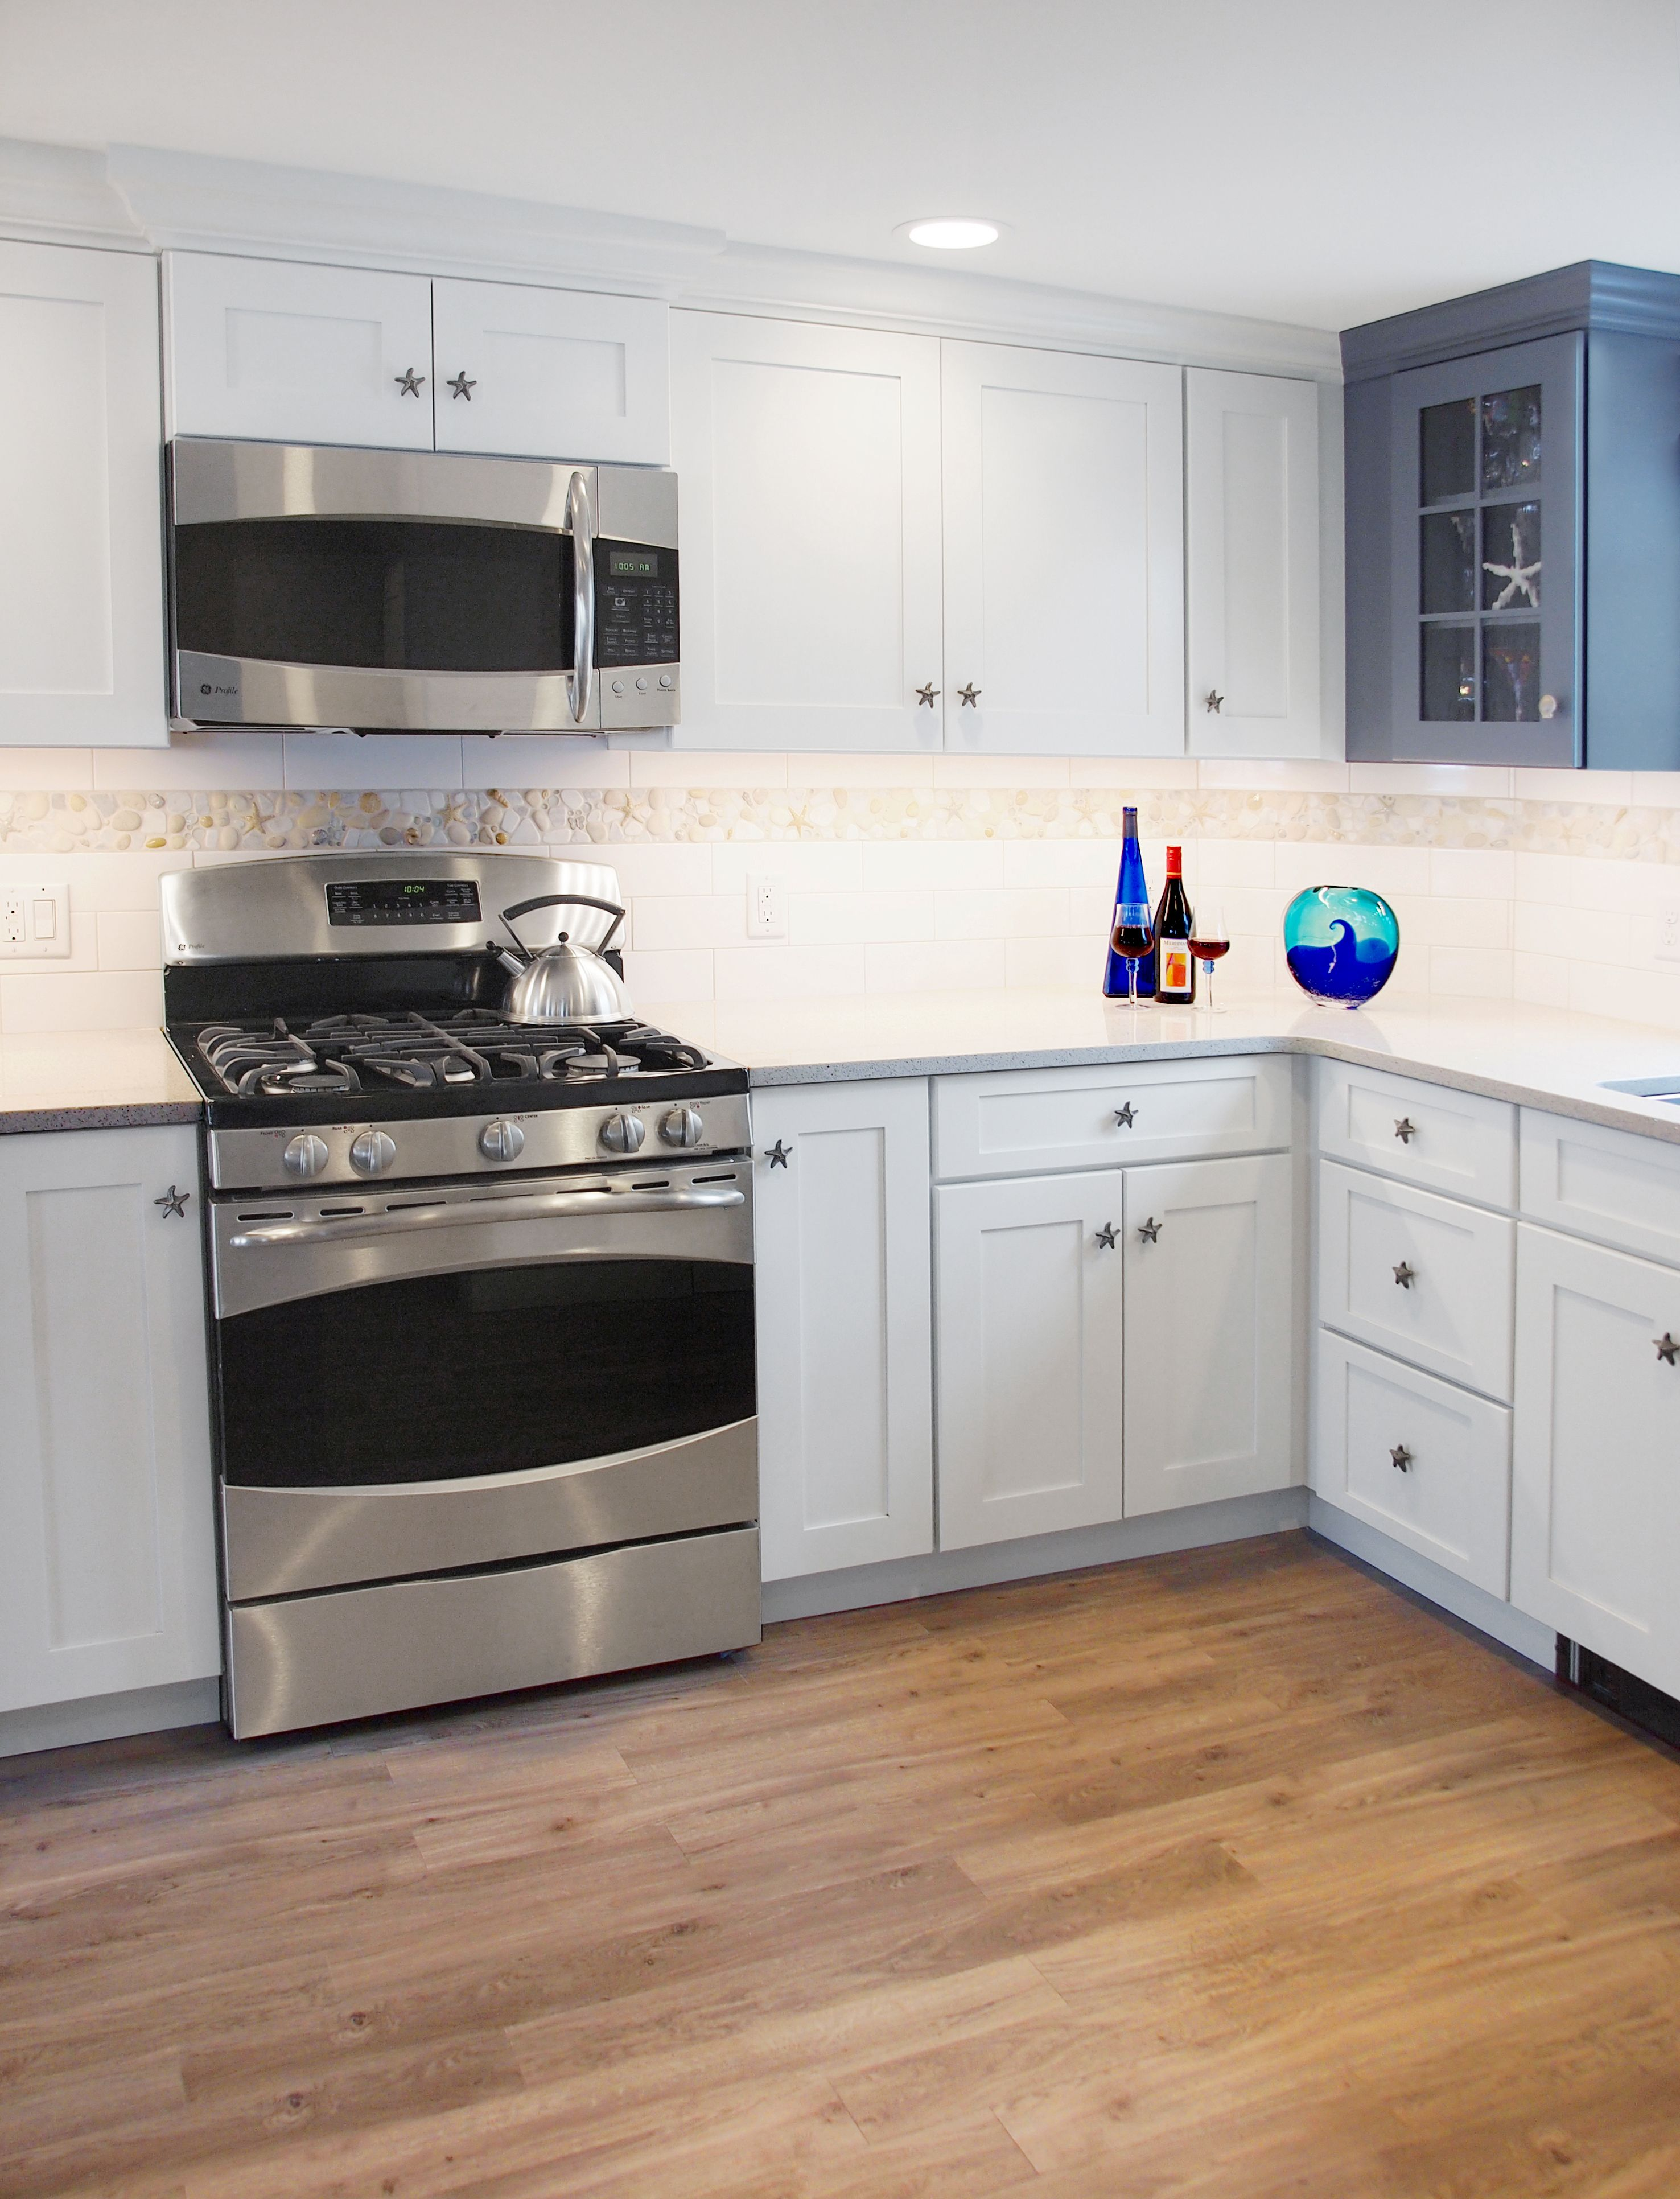 Blue Kitchen Appliances Replacement Cabinets For Mobile Homes Beach House Remodel By Renovisions With And